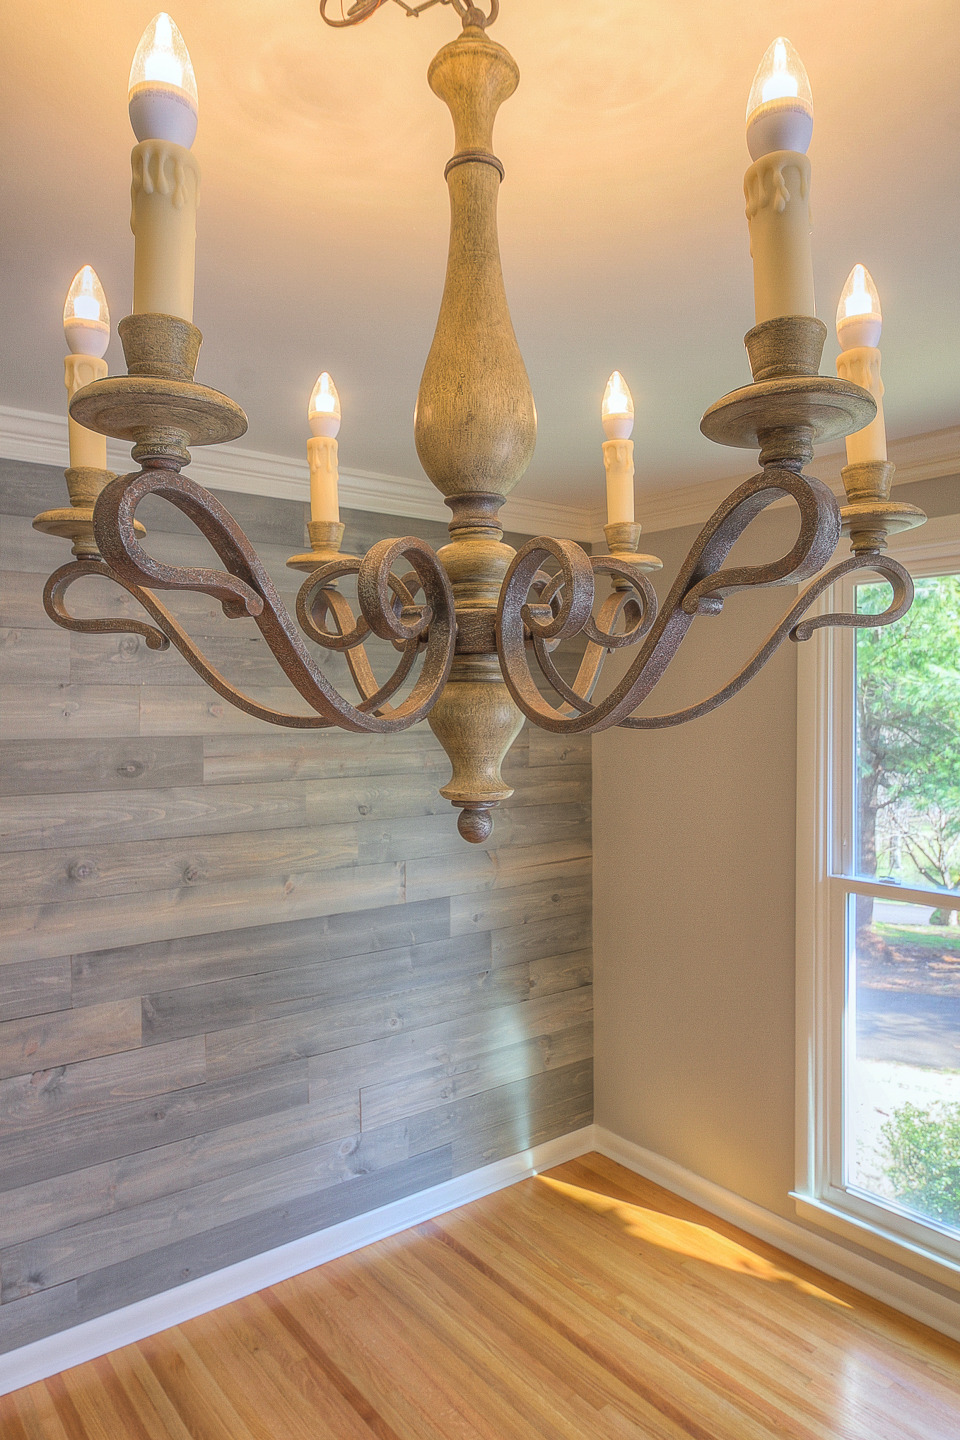 Closeup Detail of the Designer Chandelier and Reclaimed Wood Wall